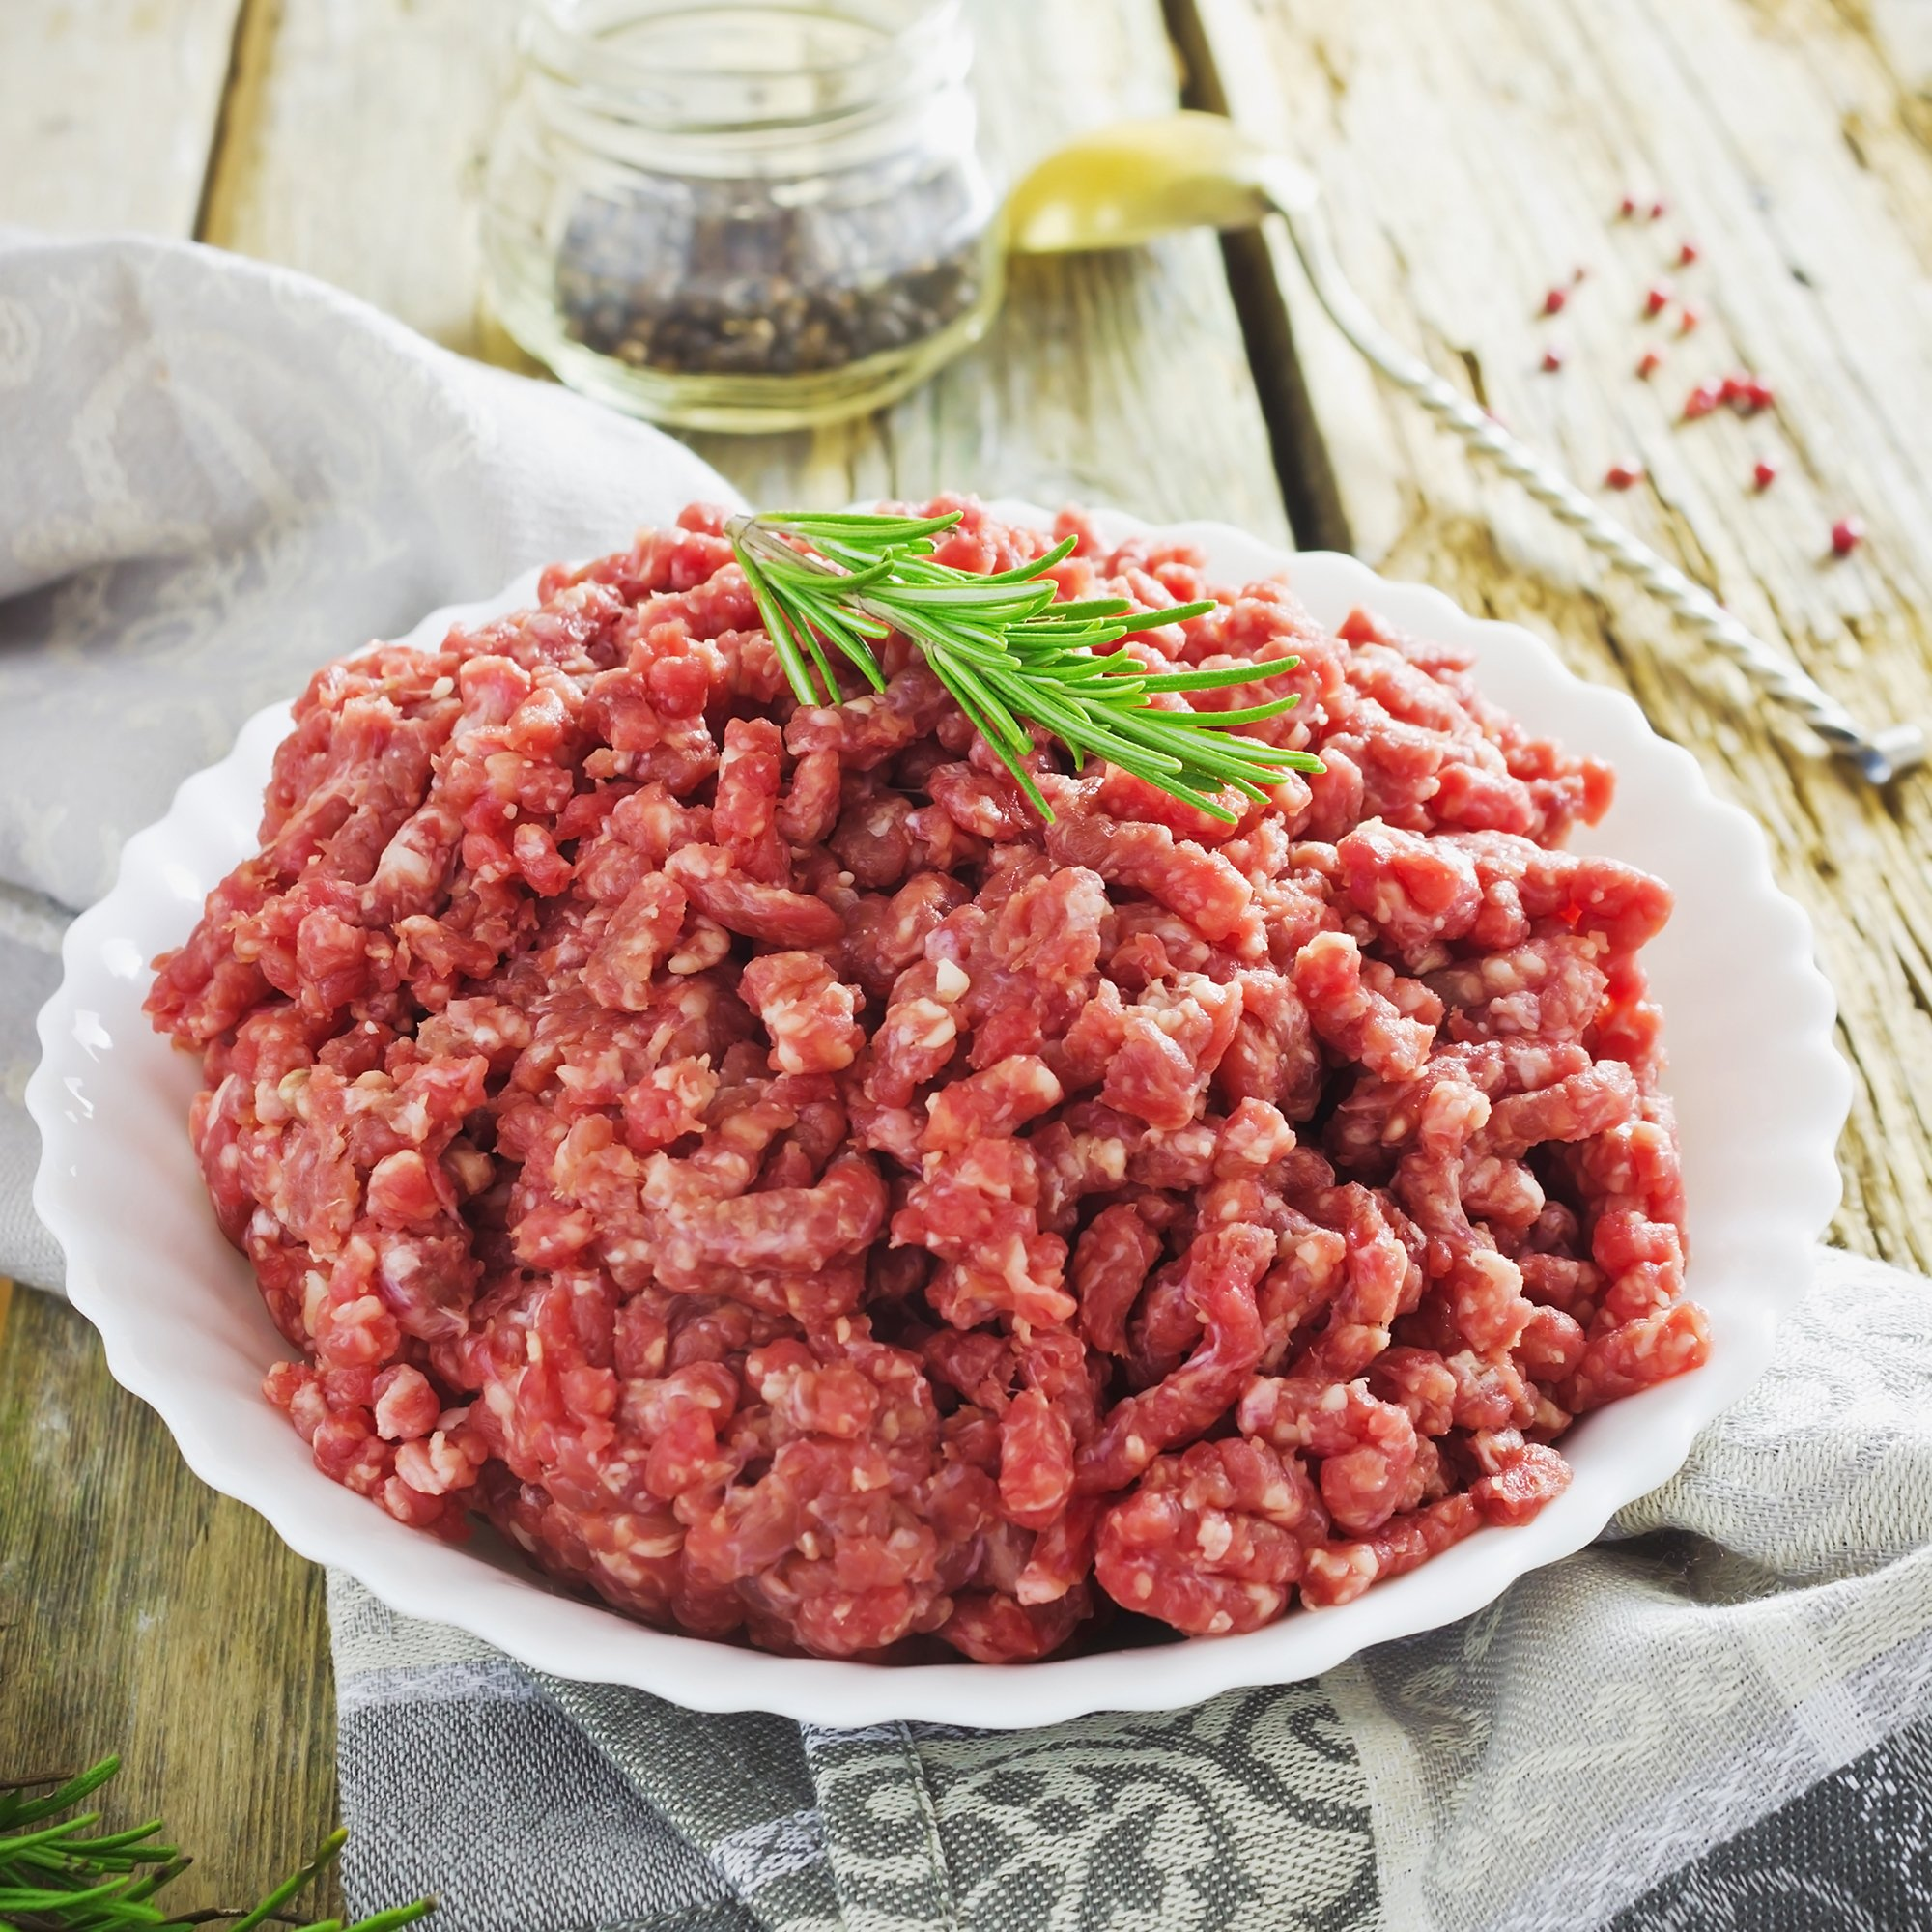 Premium Quality Ground Beef By Mount Pleasant Beef - Organic & Gluten-Free Grass FedBeef - 5 Pack - Delicious & Healthy - Protein & Omega-3 Rich - Juicy & Ready ToCook - Ideal For BBQ